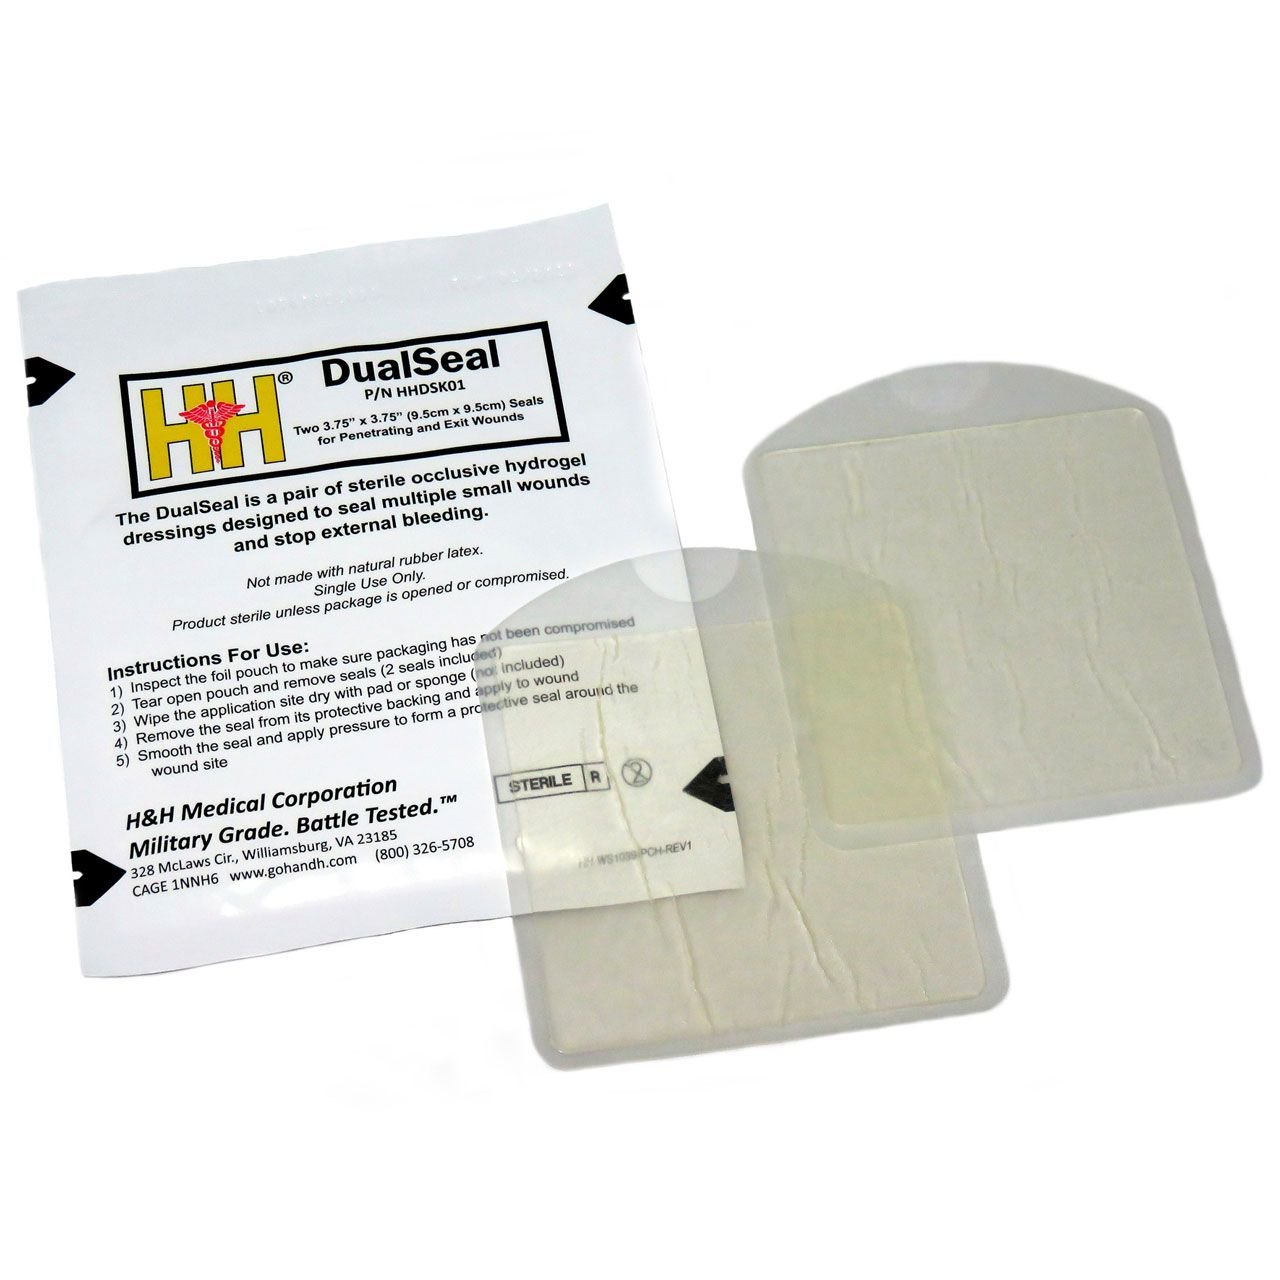 H&H Medical DualSeal Chest Seal Two-Pack